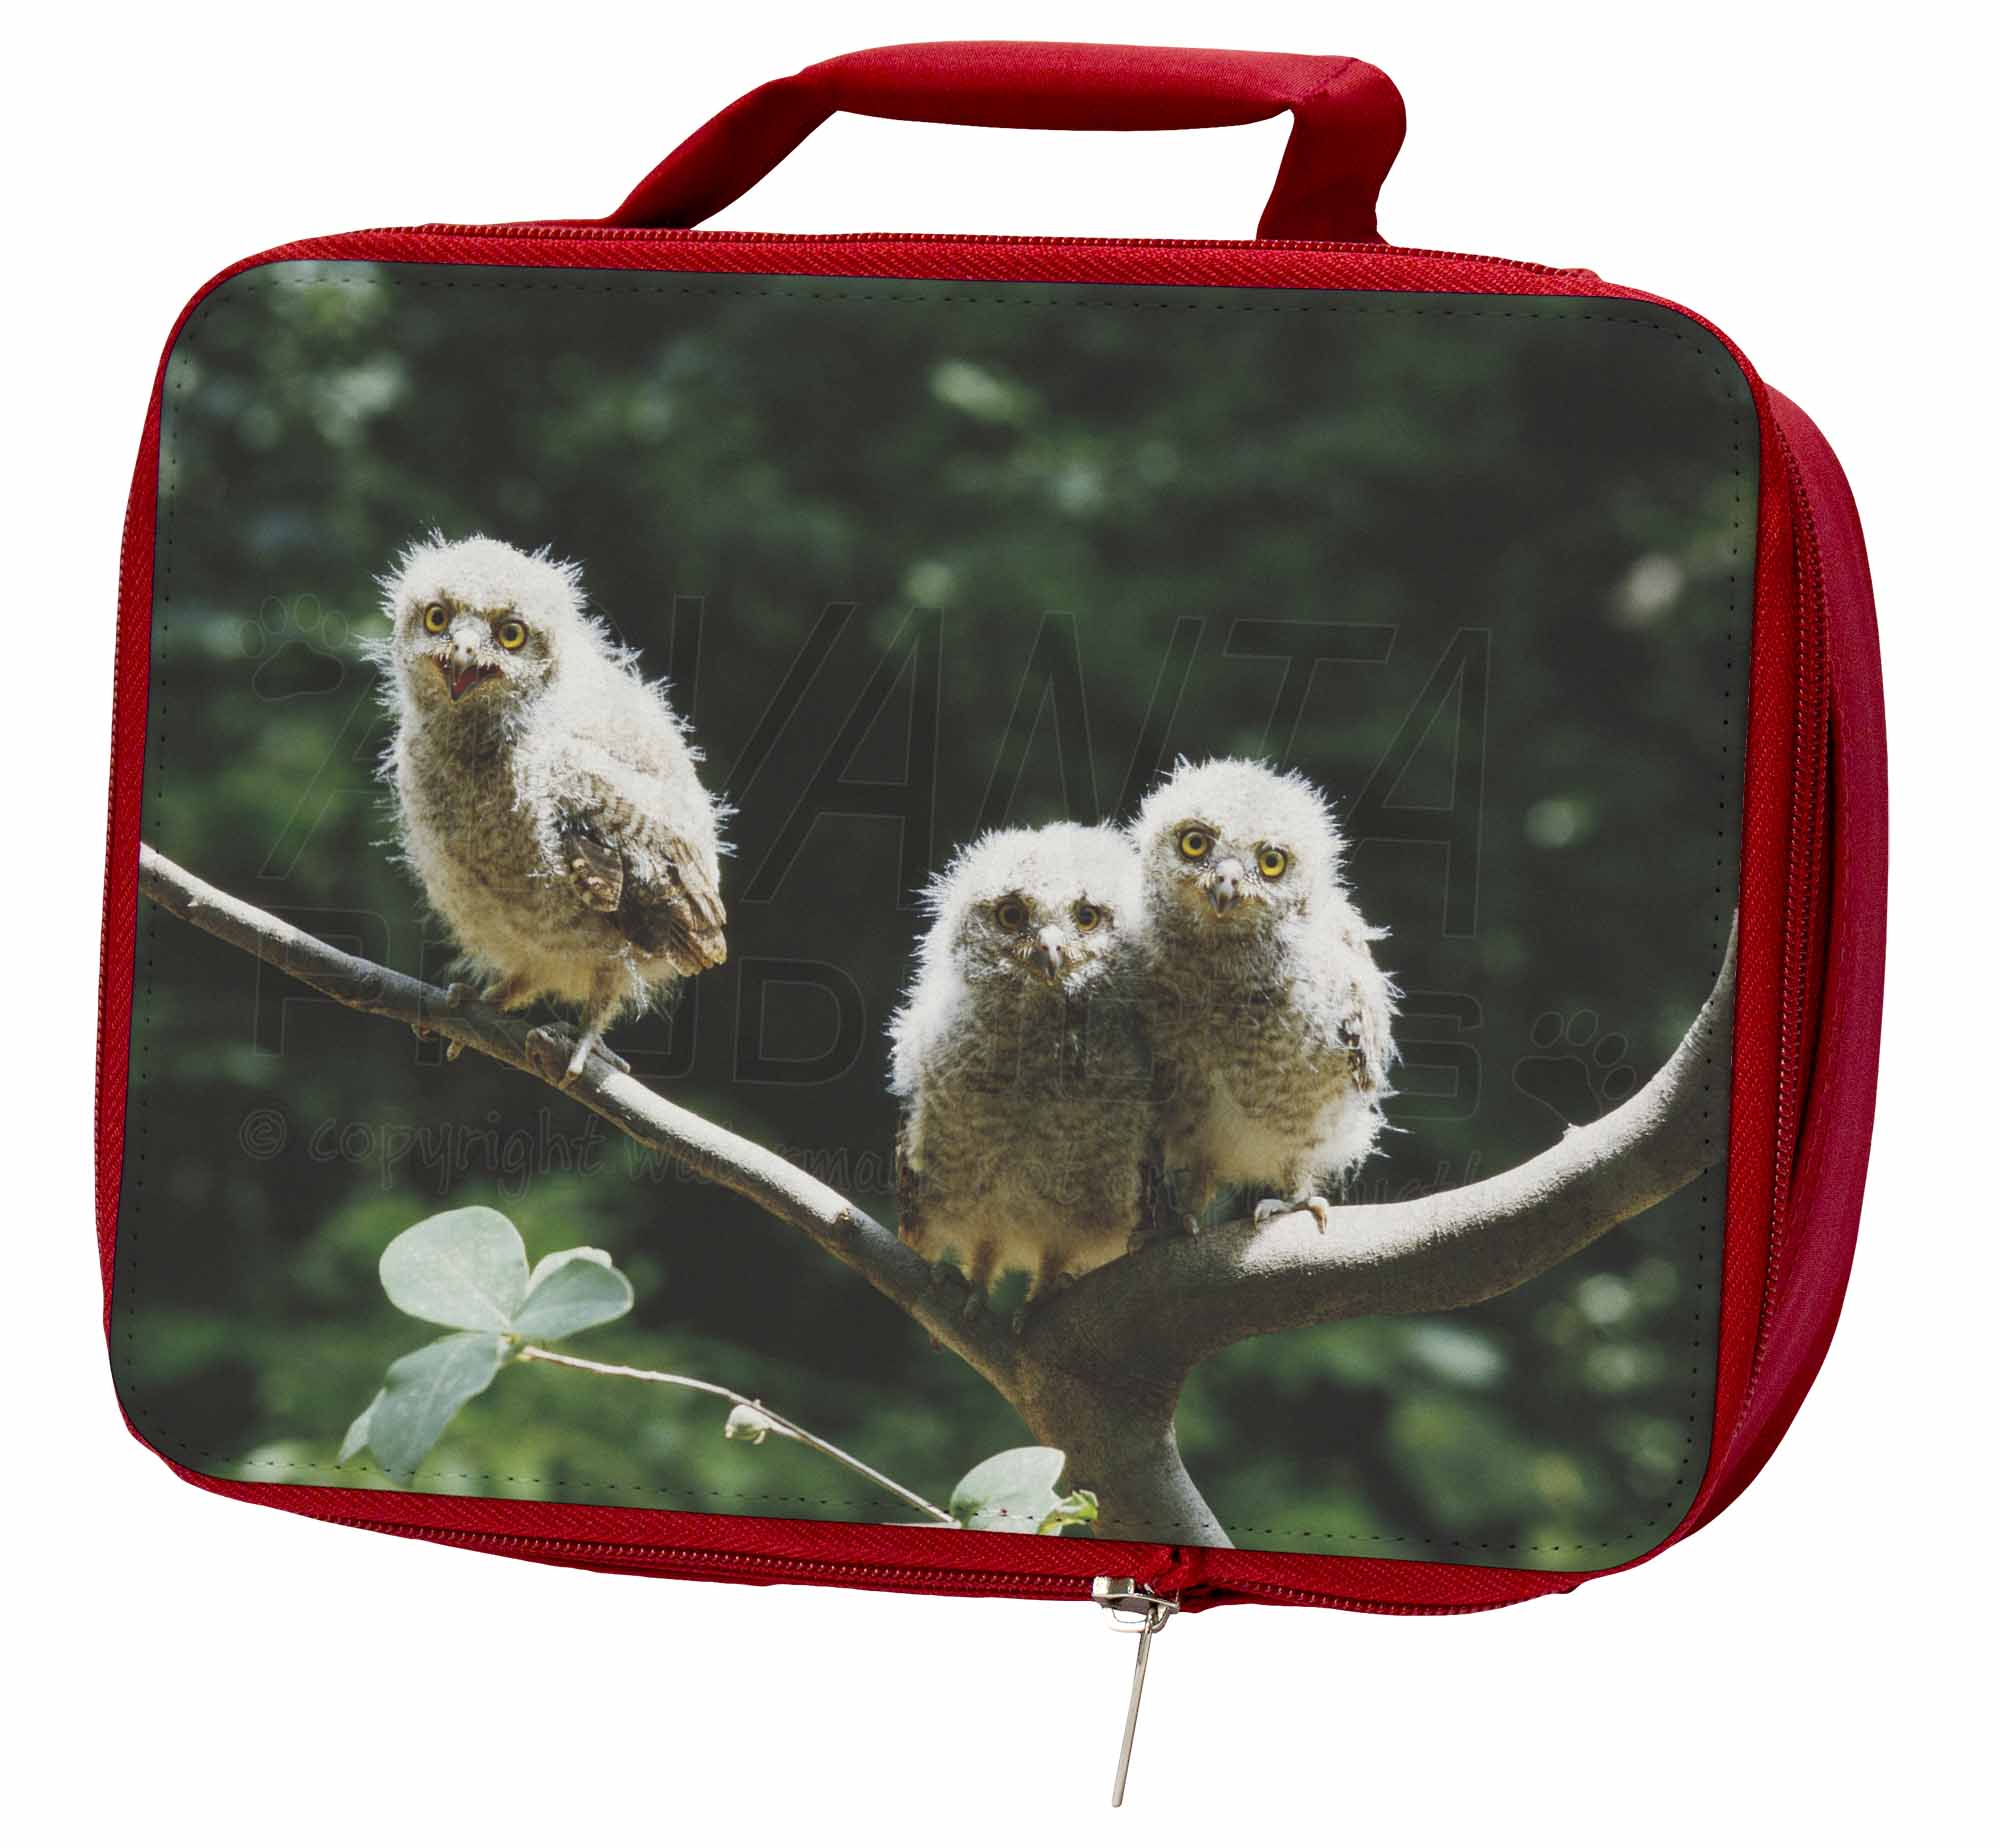 Baby Owls on Branch Insulated School Red School Insulated Lunch Box/Picnic Bag, AB-2LBR b8b19c